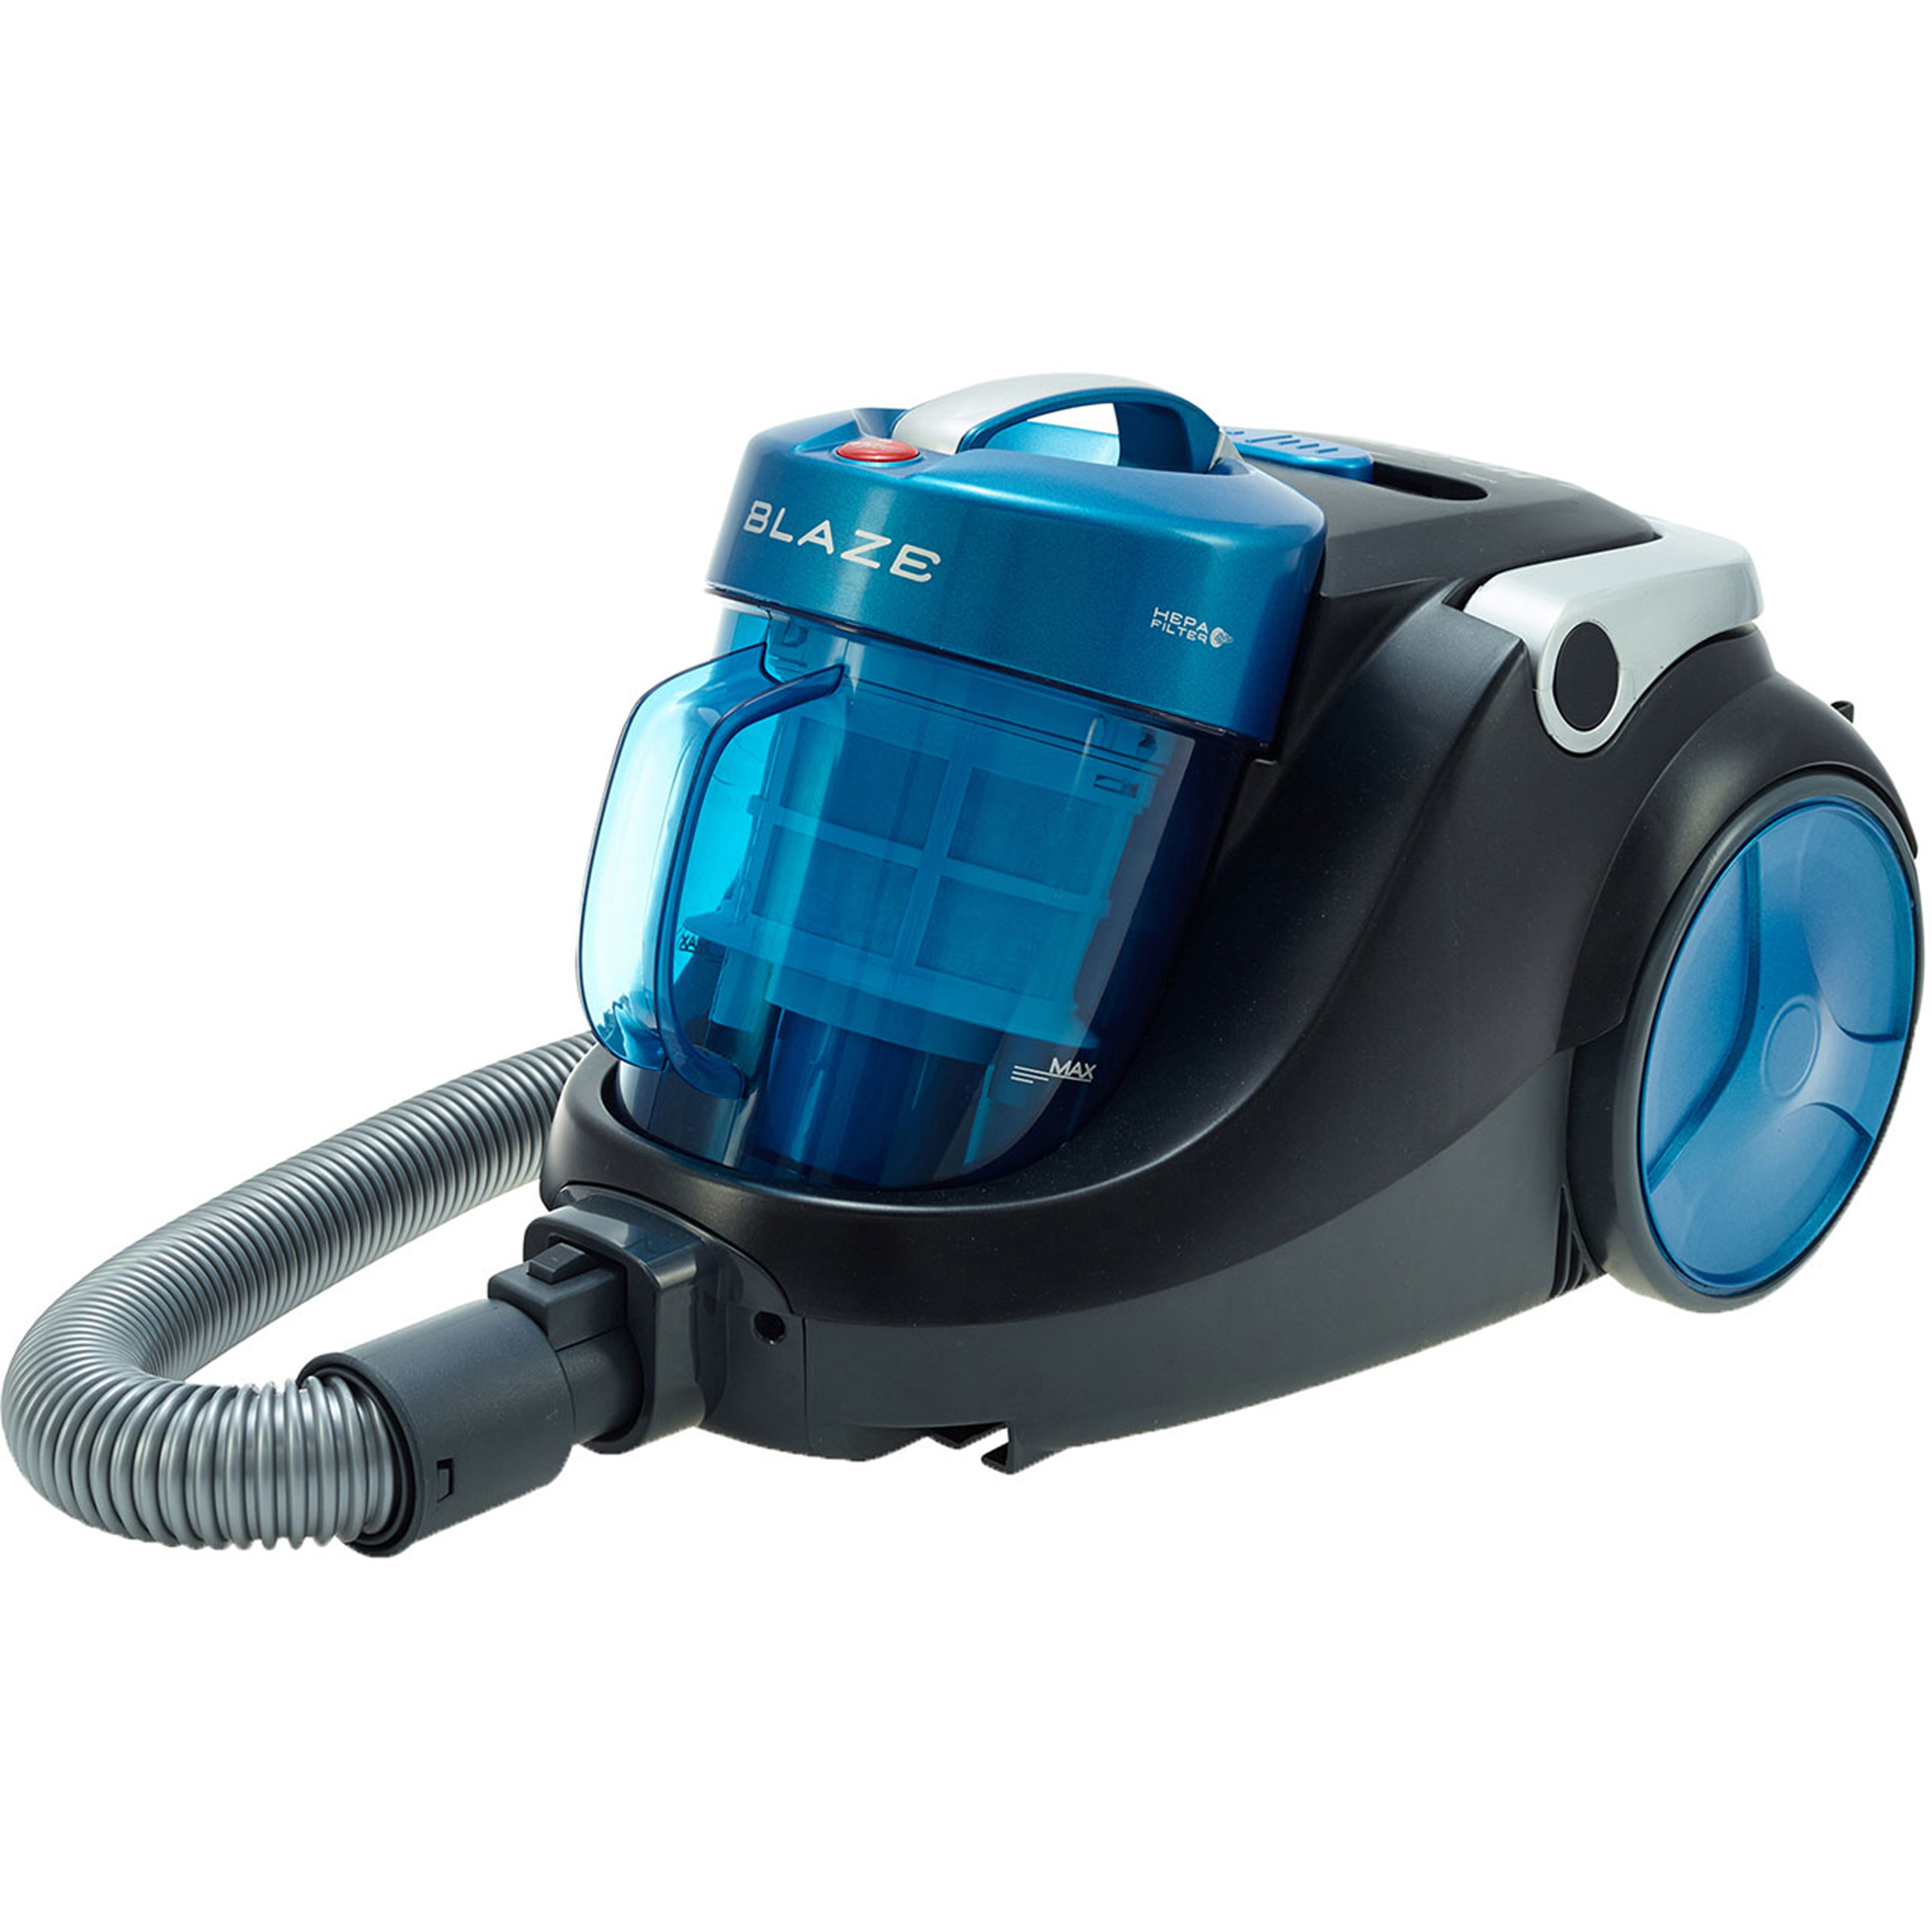 Hoover Blaze Pets Compact Bagless Cylinder Vacuum Cleaner